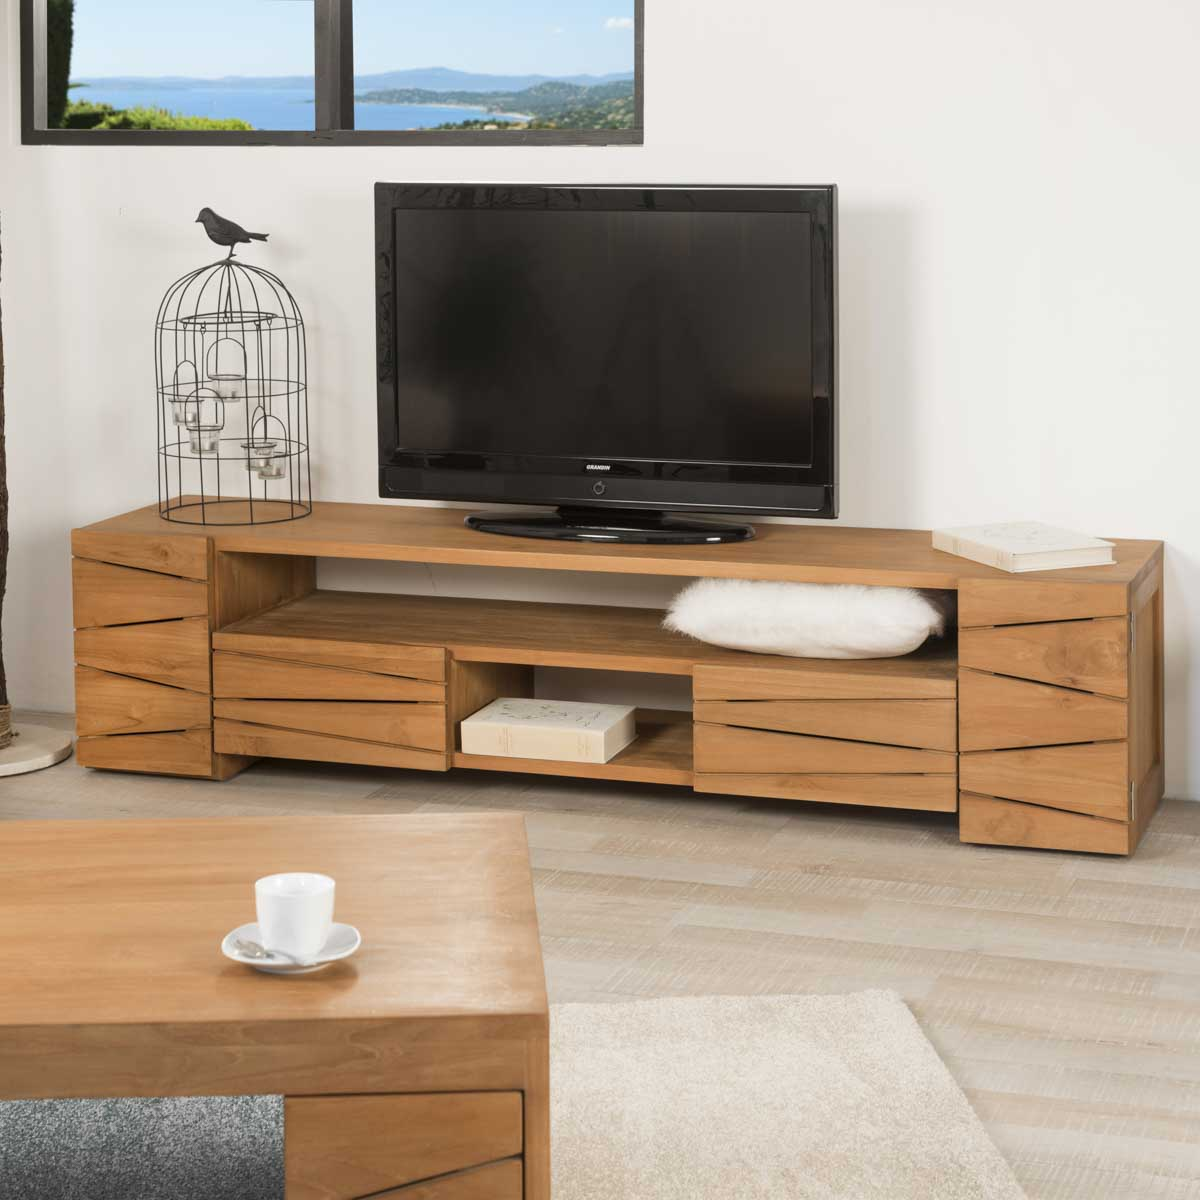 Meuble tv teck meuble tv bois naturel rectangle for Meuble audio en bois